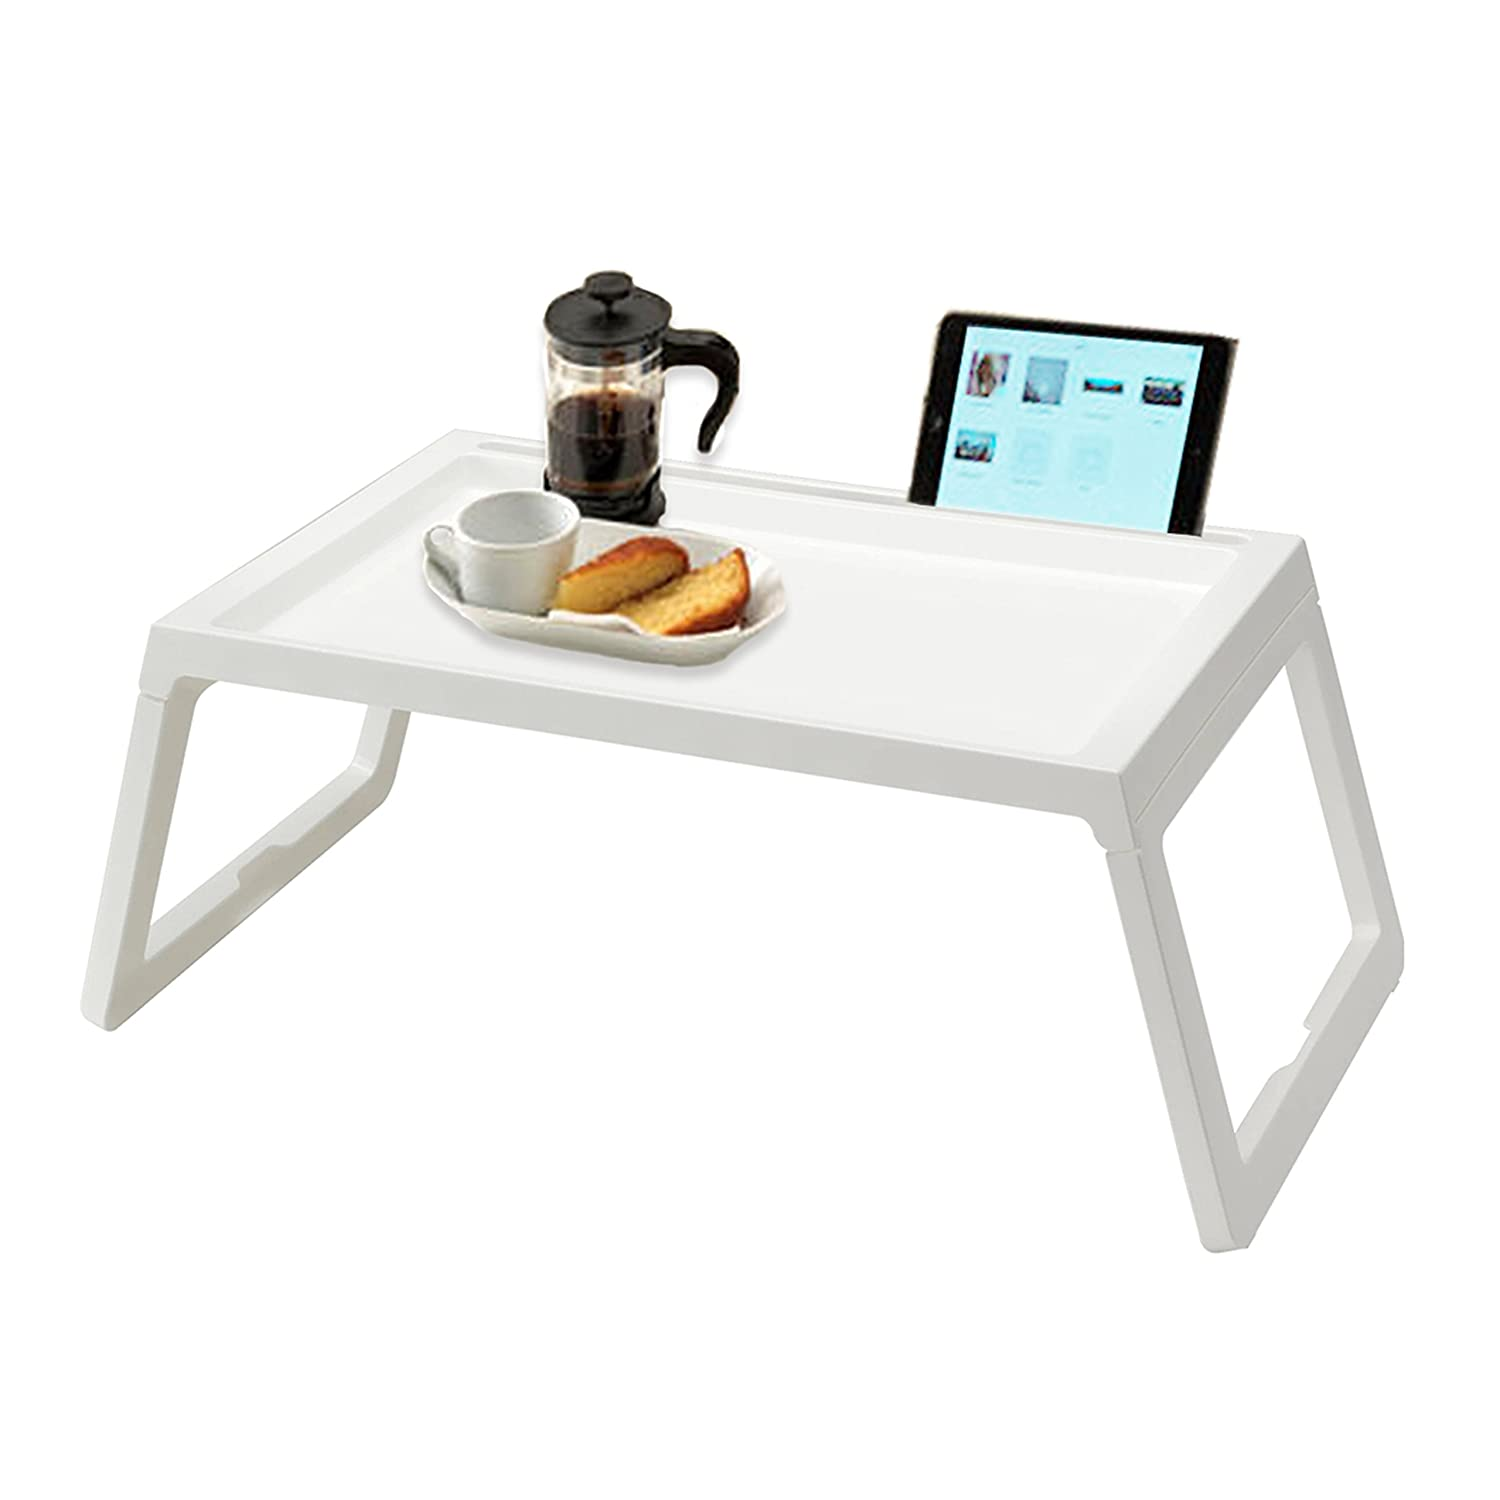 RAINBEAN Bed Table Tray, Foldable Breakfast Serving Tray for Kids Eating, Laptop Computer Desk for Sofa, Portable Outdoor Camping Stand with Floding Legs, Lightweight PP, 22 inch White